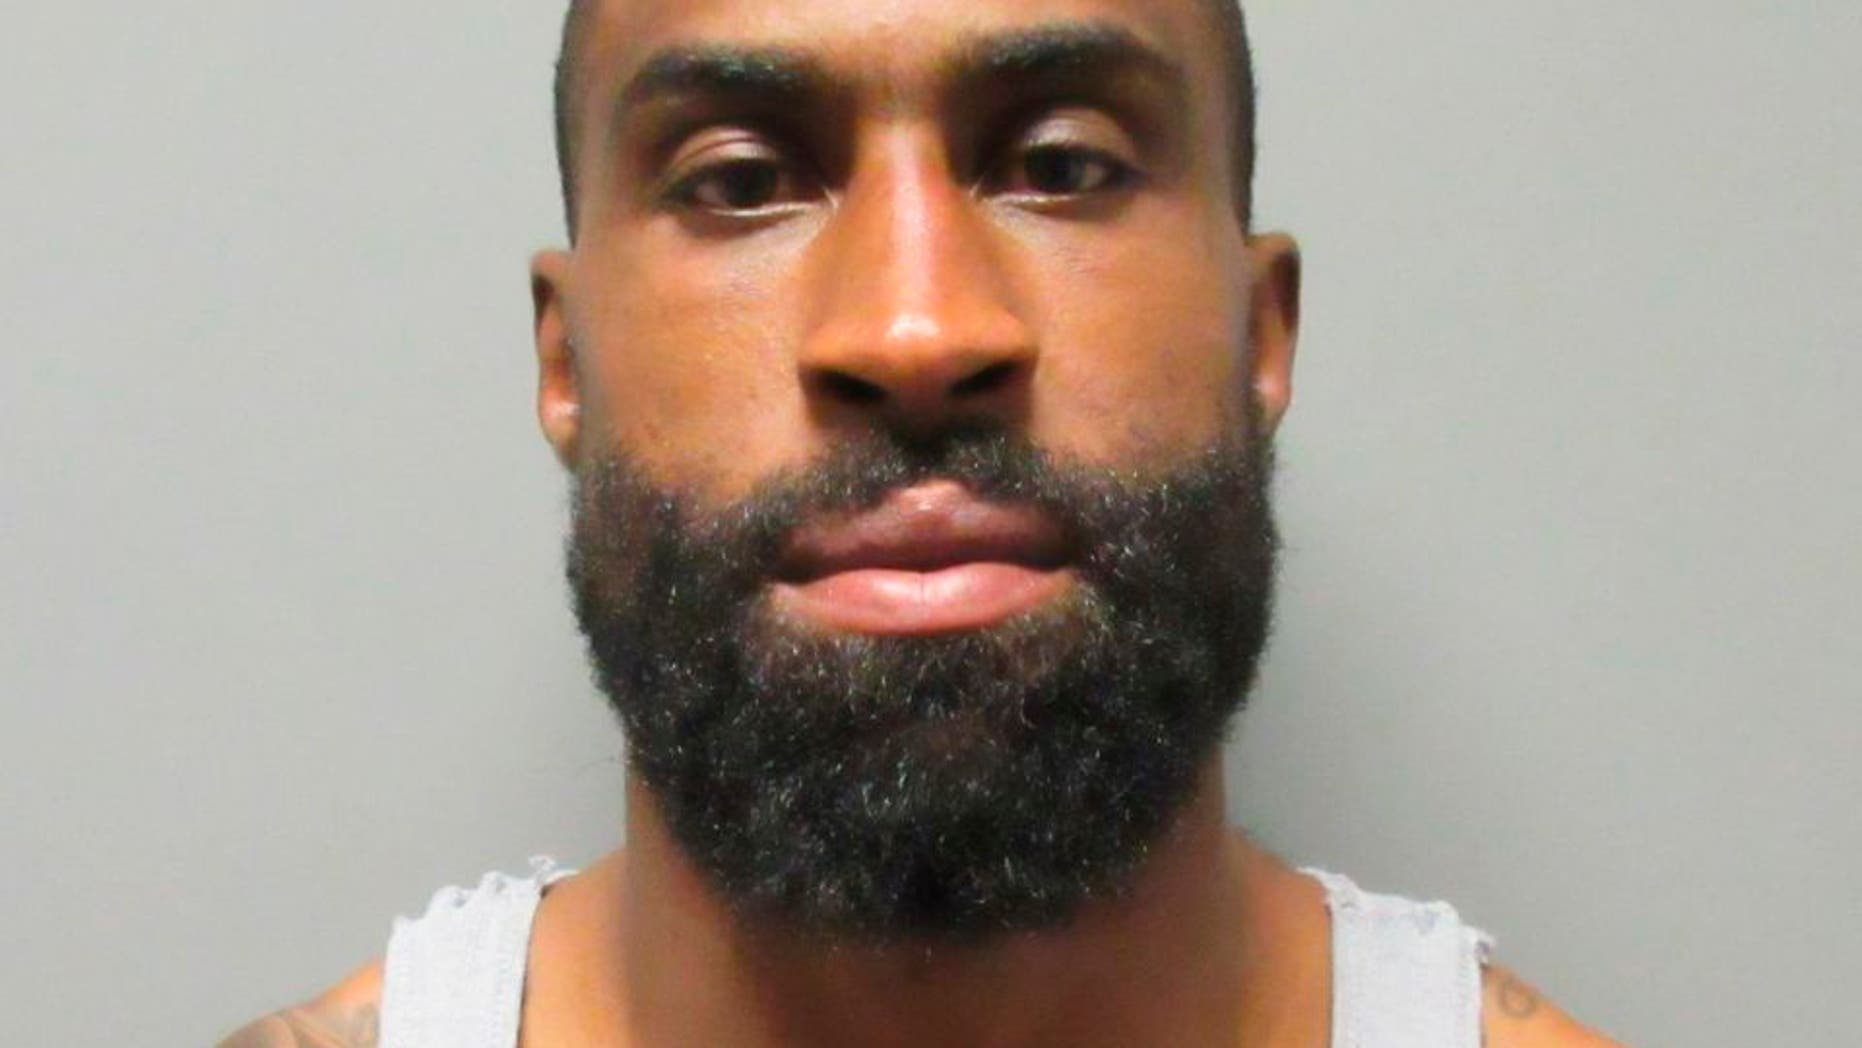 Brandon Browner was arrested in July for allegedly breaking into the Southern California home of his ex-girlfriend and threatening to kill her.